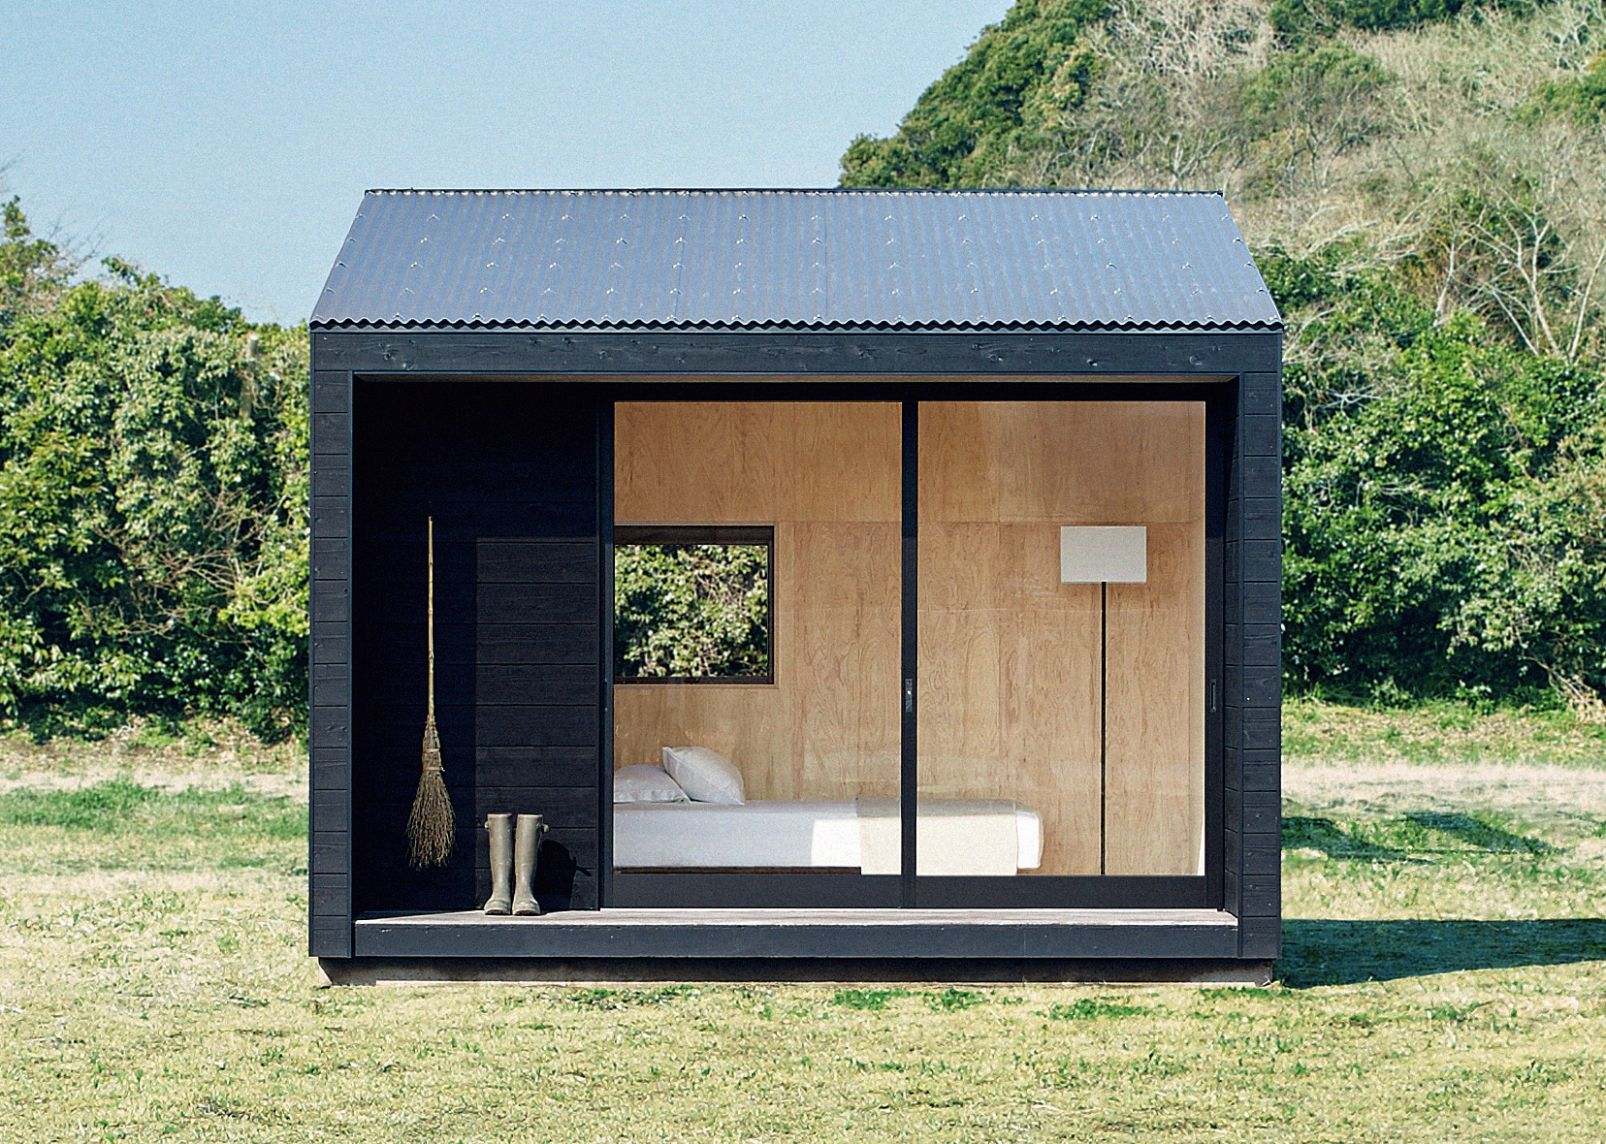 8 of the best tiny homes you can buy for under €80k - tiny house europe